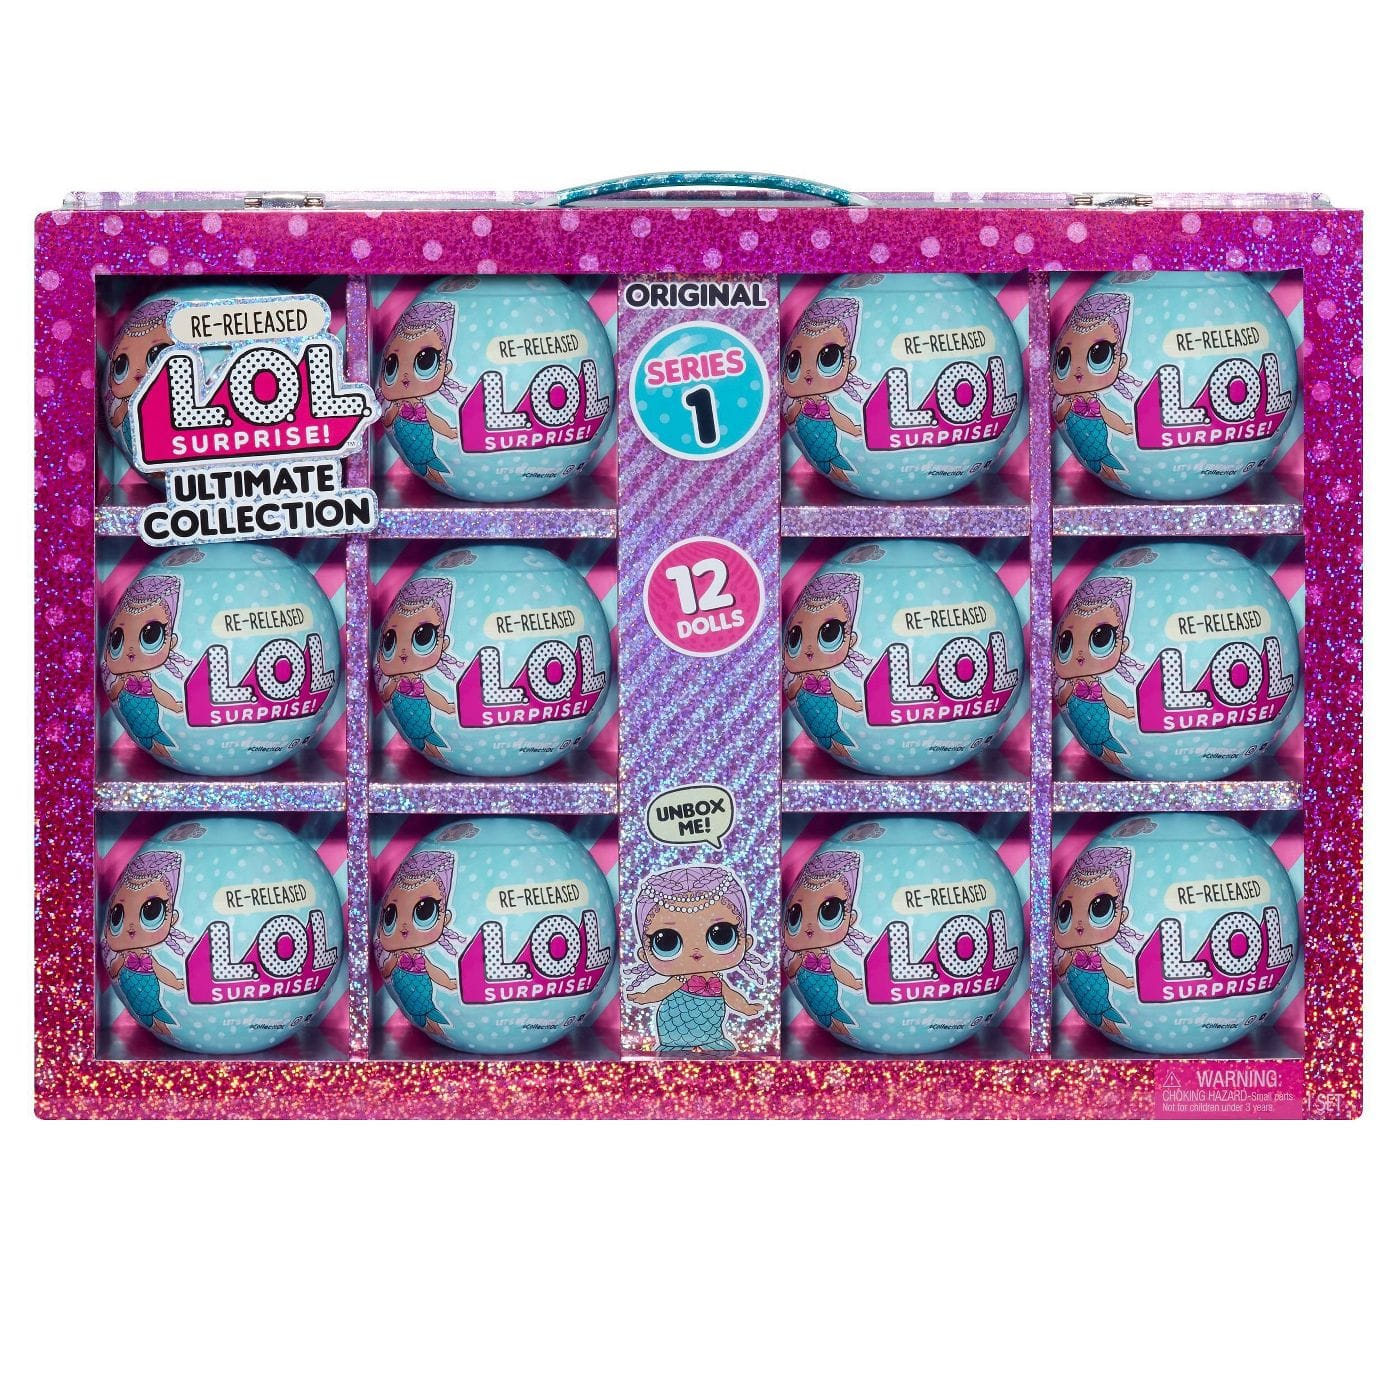 12-Count L.O.L. Surprise! S1 Ultimate Collection Merbaby Re-Released Dolls $50 + Free Shipping